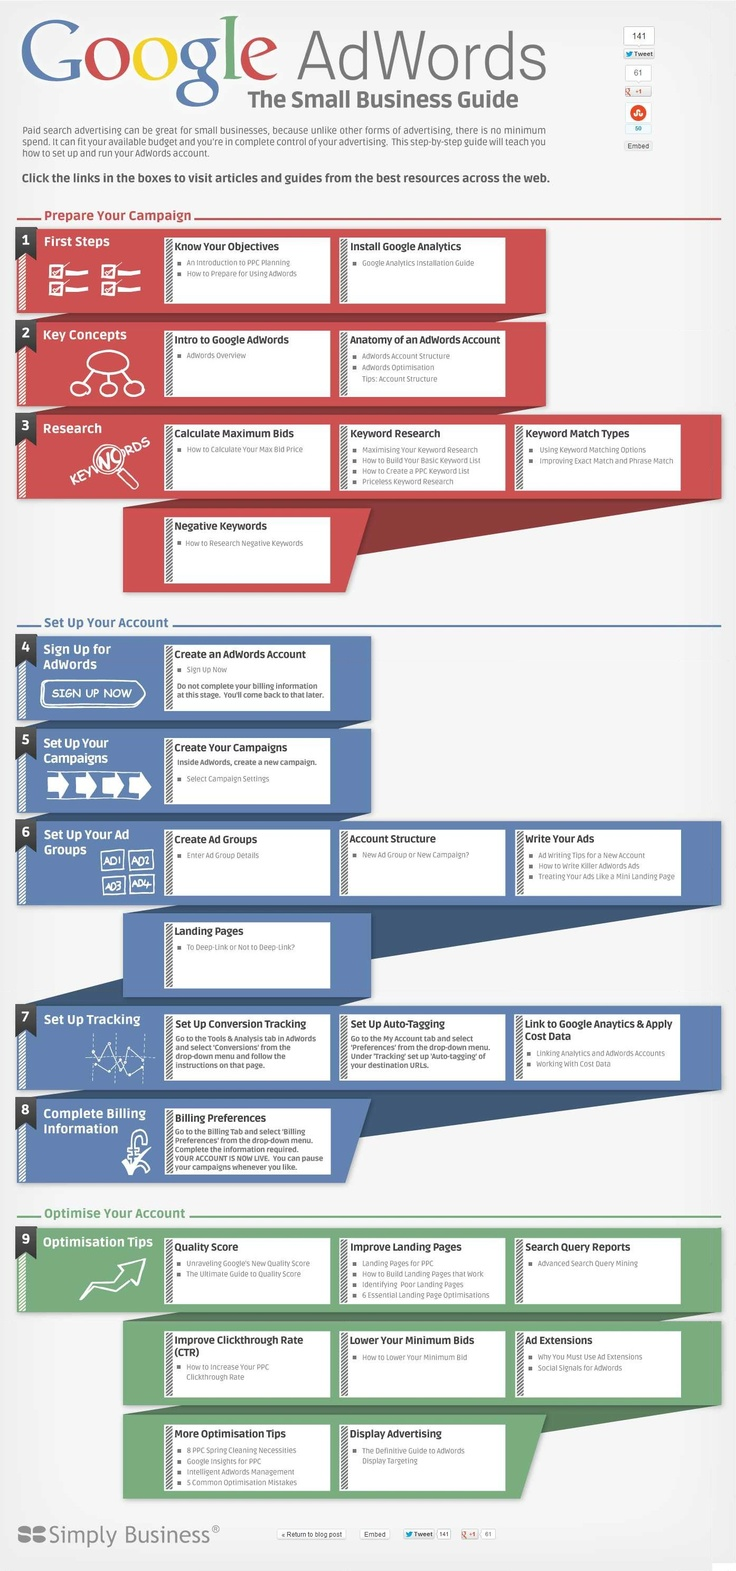 Google AdWords: The Small Business Guide